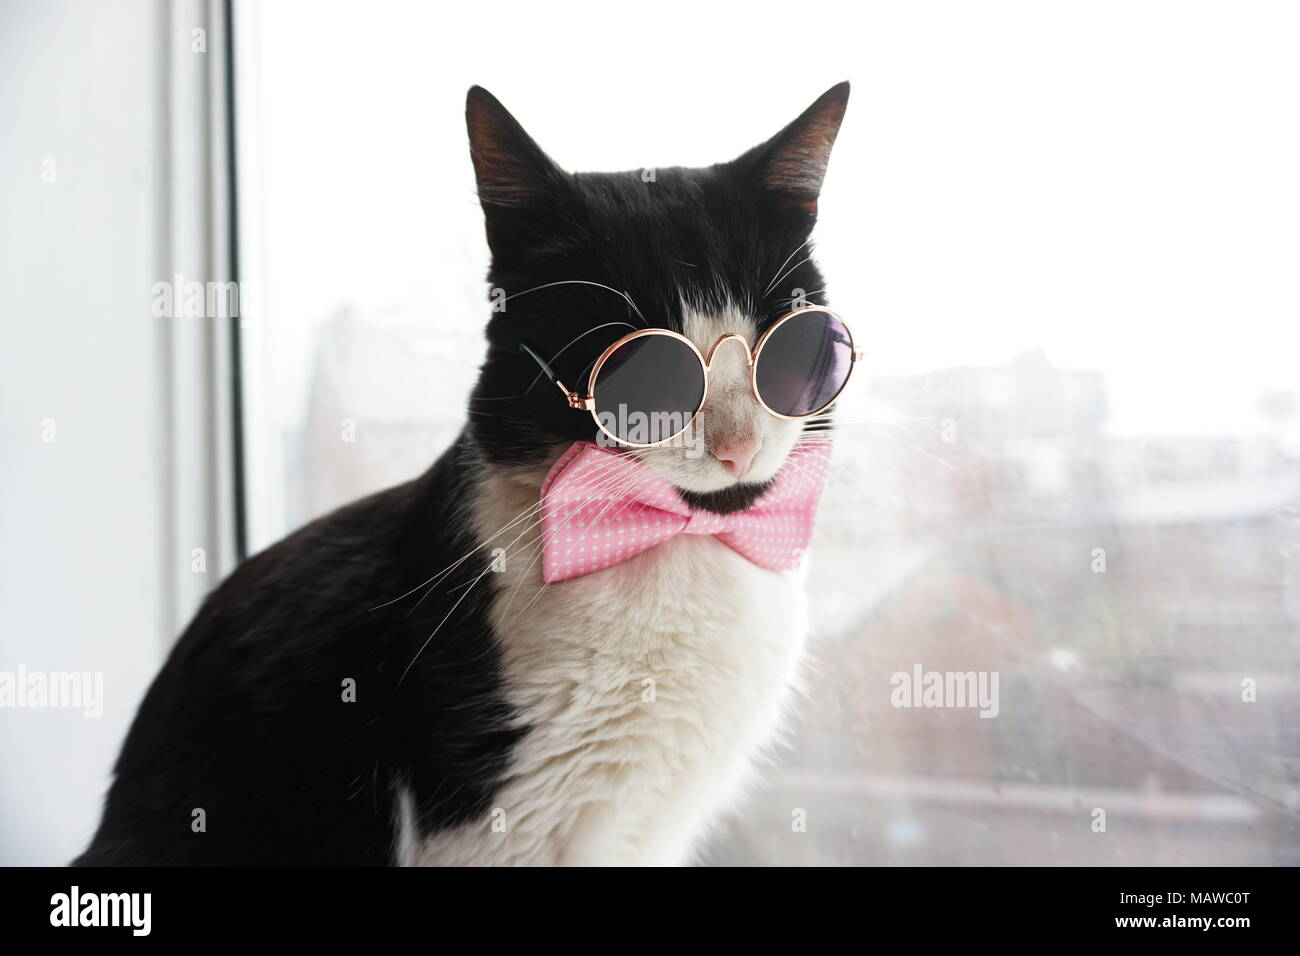 edfbcc213a39 Black & White Cat with glasses and bow tie Stock Photo: 178808472 ...